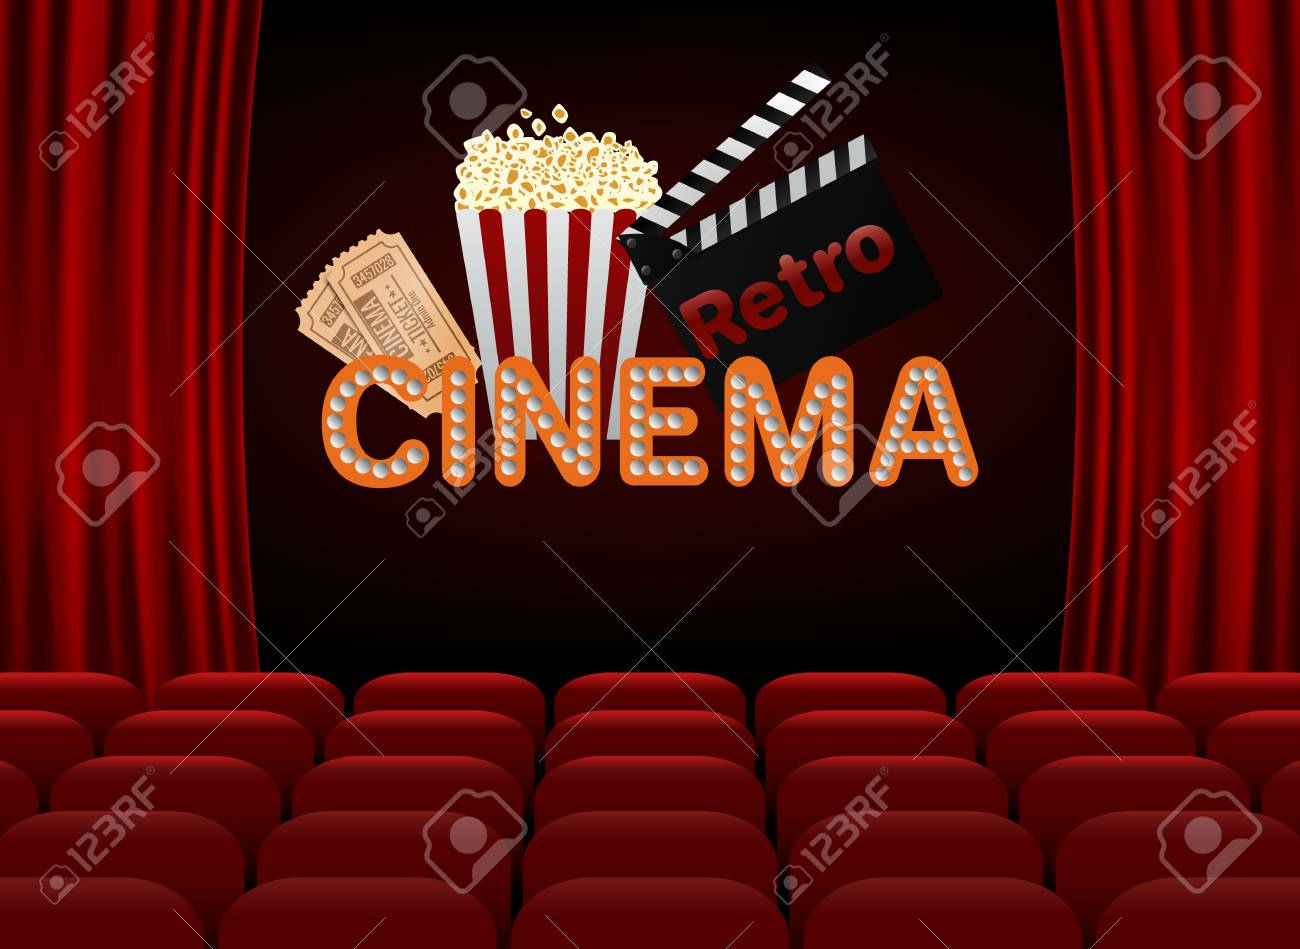 Movie Premiere Poster Design Vector Template Banner For Show Royalty Free Cliparts Vectors And Stock Illustration Image 84642964